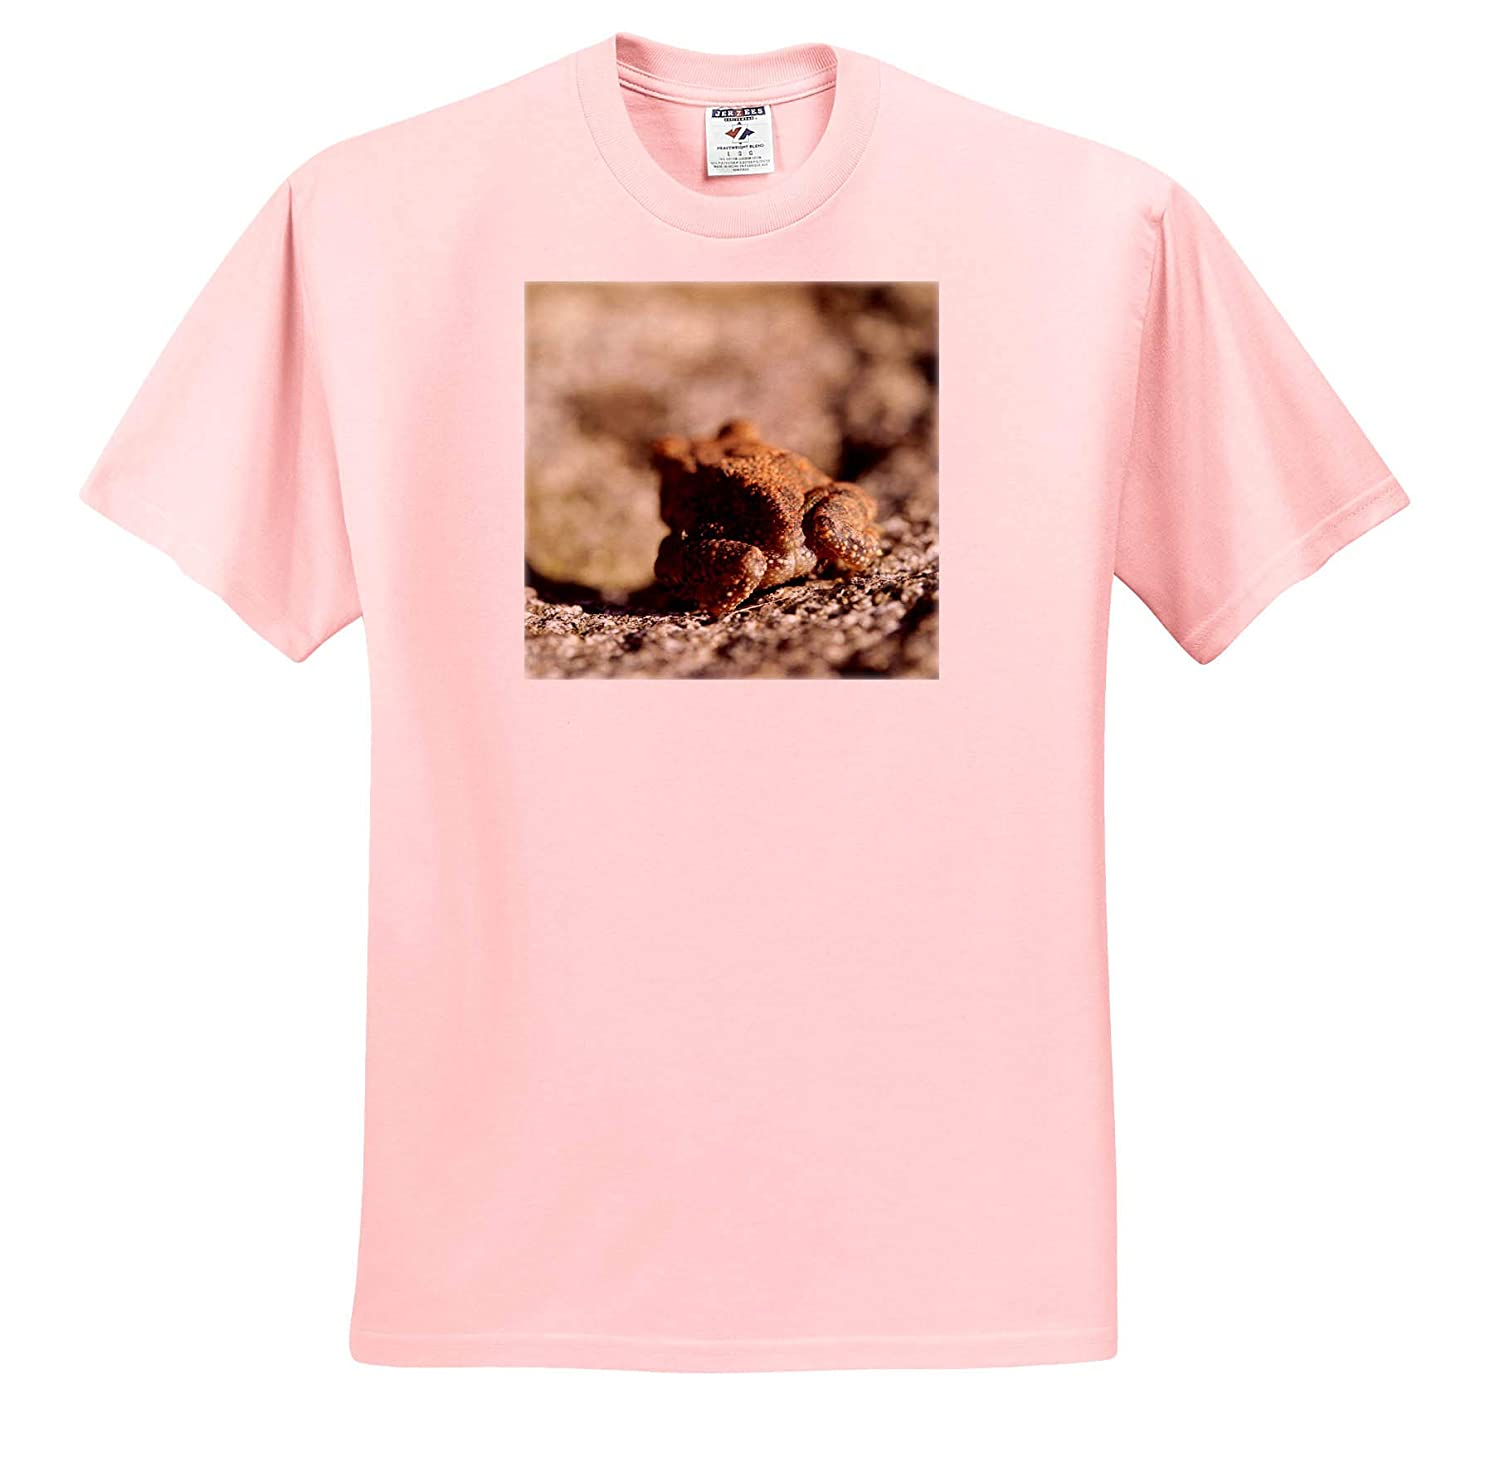 Macro Photograph of The Butt of an American Toad - Adult T-Shirt XL Amphibian ts/_315598 3dRose Stamp City